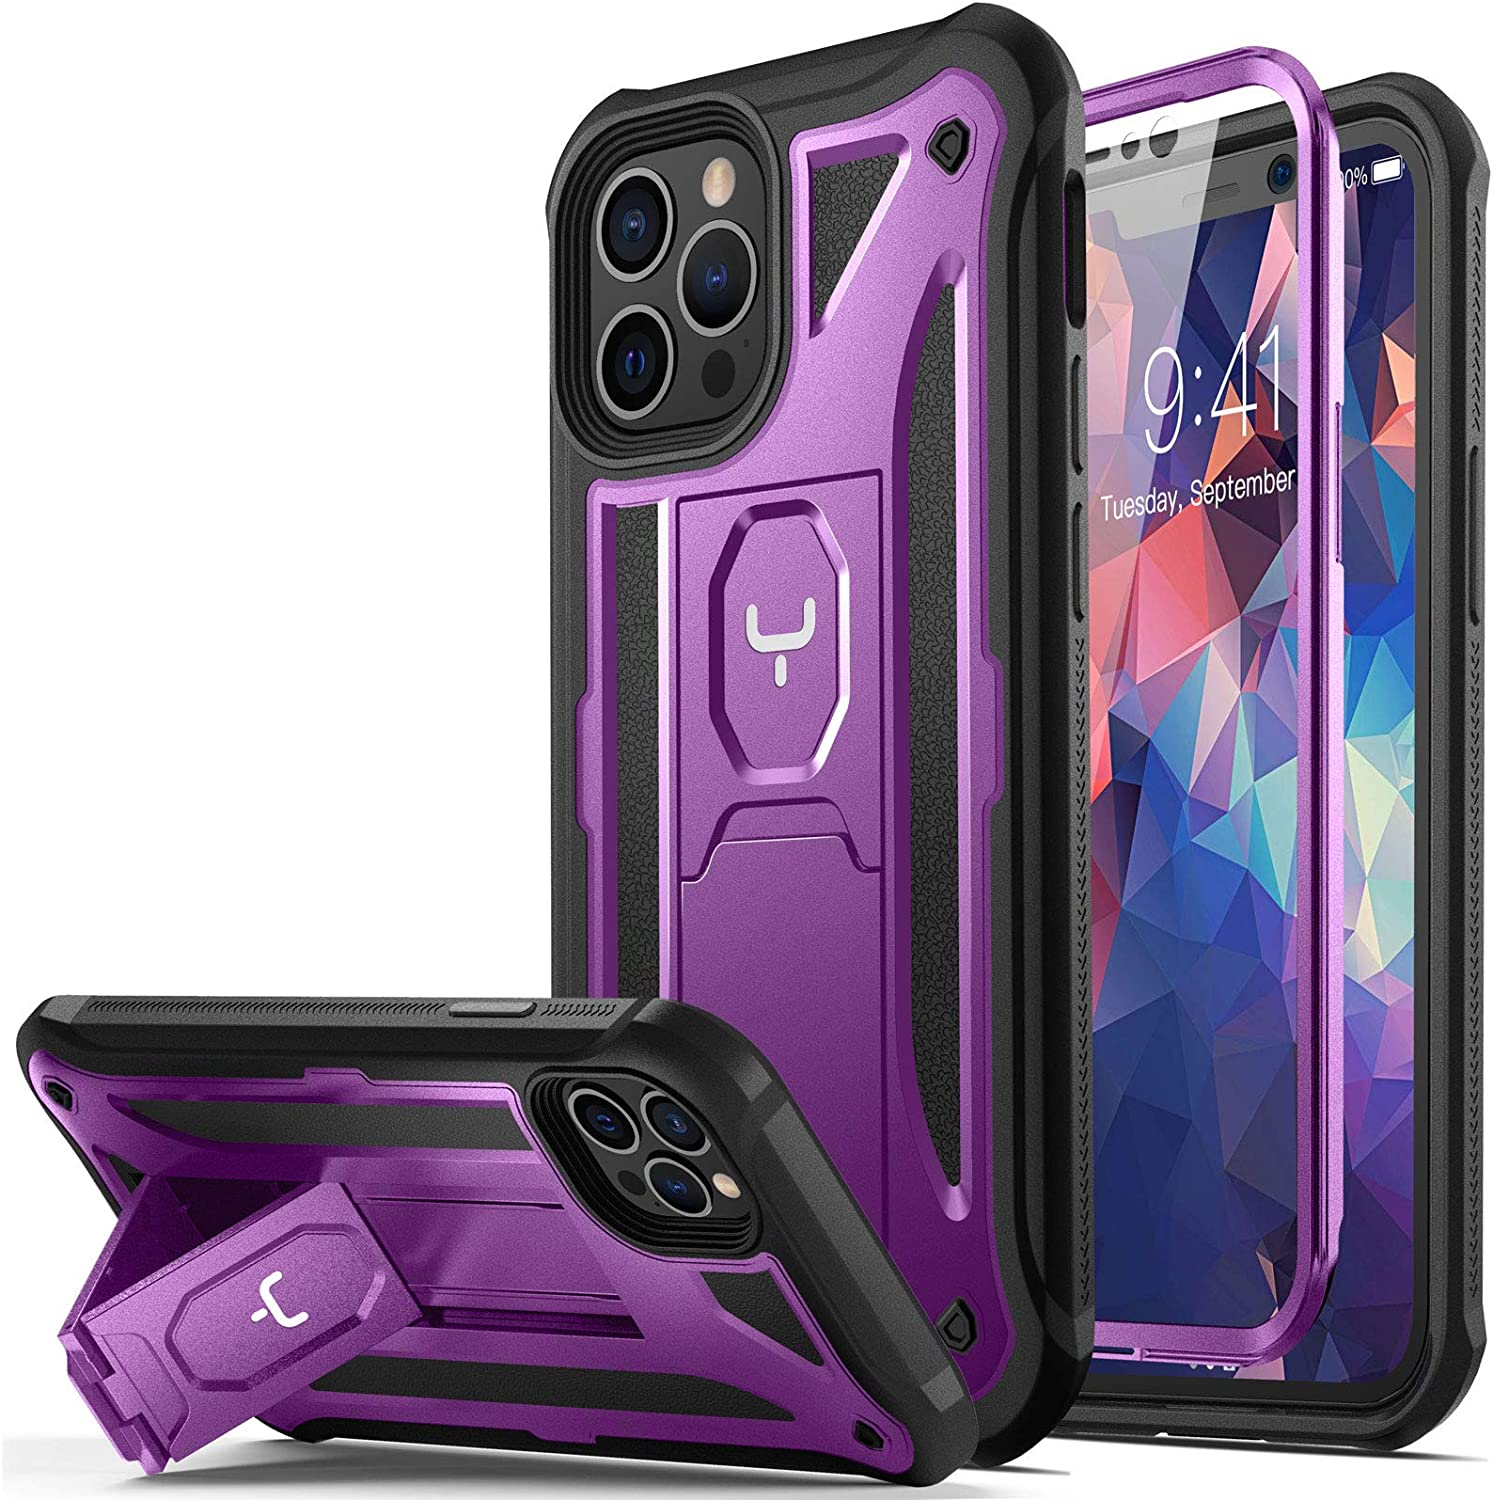 YOUMAKER Designed for iPhone 12 Case & iPhone 12 Pro Case Heavy Duty Protection Kickstand with Built-in Screen Protector Shockproof Cover for iPhone 12/12 Pro Case 6.1 inch - Purple